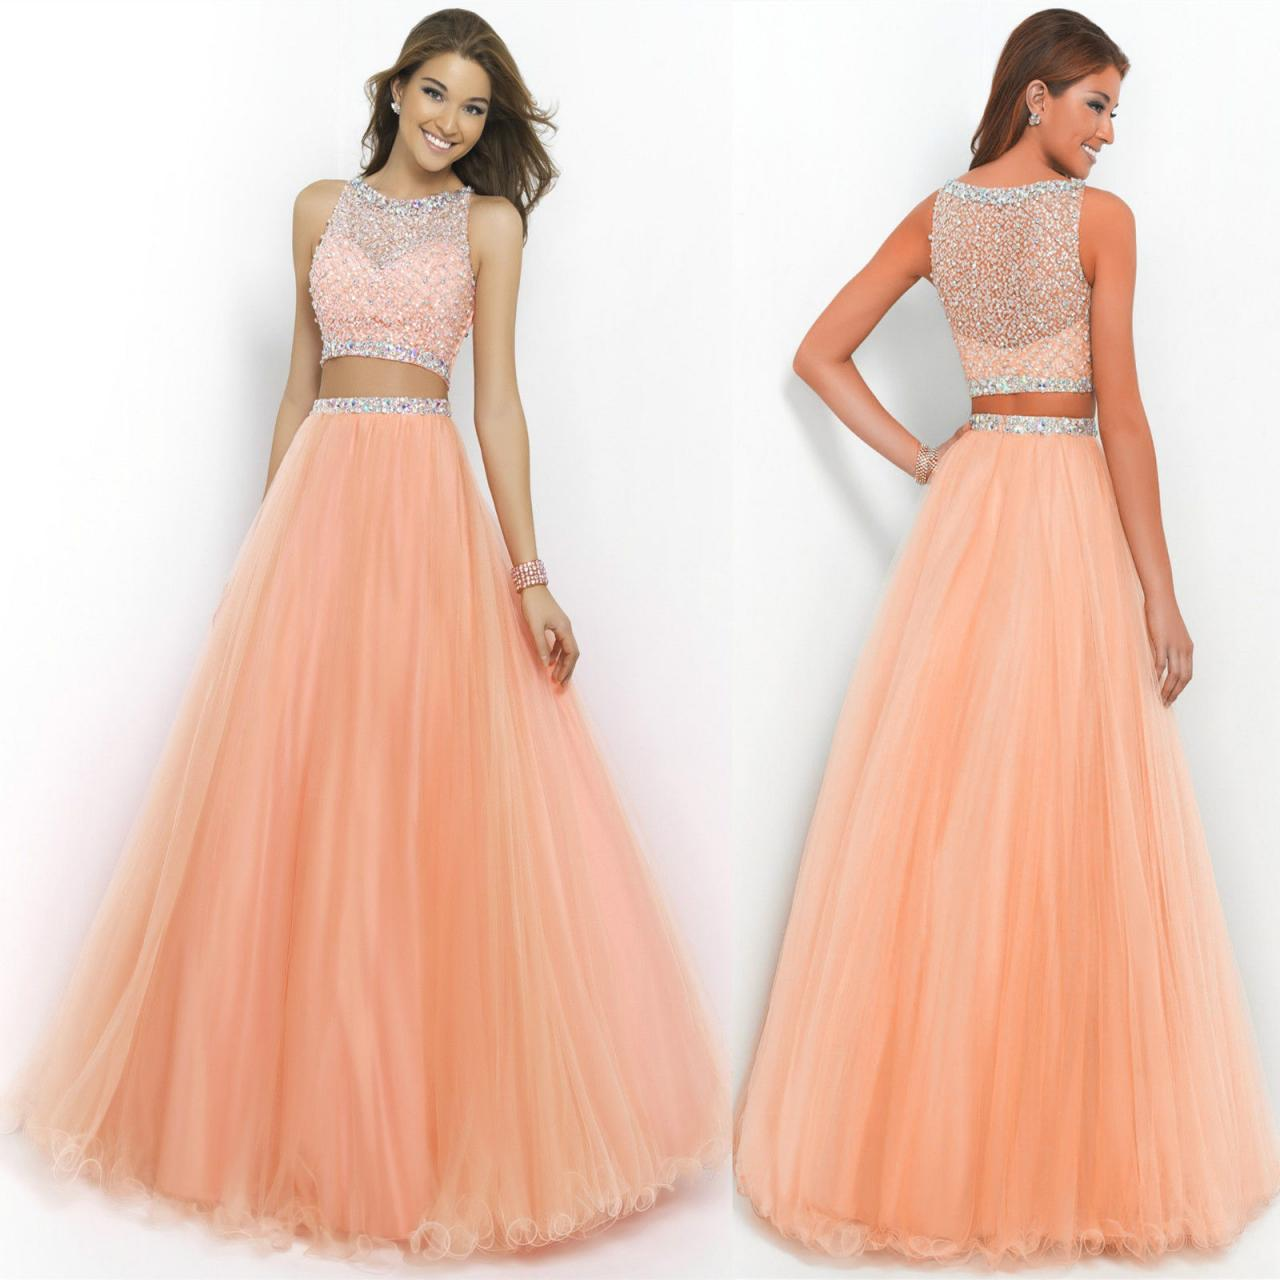 Peach Two Piece Long Prom Dresses Beaded Scoop Neck Sleeveless A-Line Floor- Length 553c4abf08c0